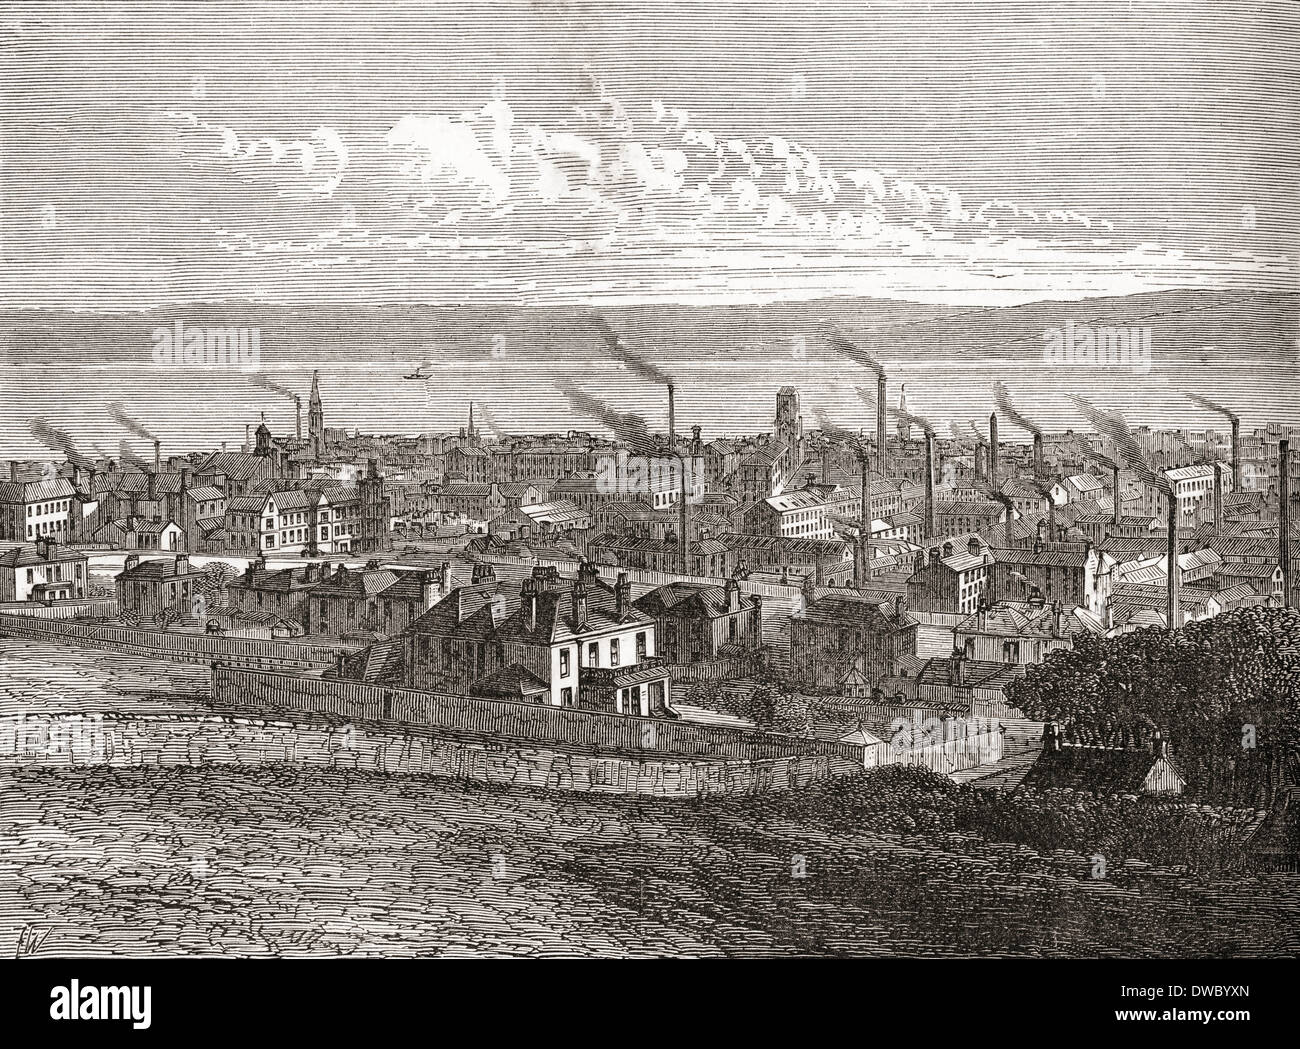 View of Dundee, Scotland, from The Law in the 19th century, when the city had over 60 jute mills. - Stock Image